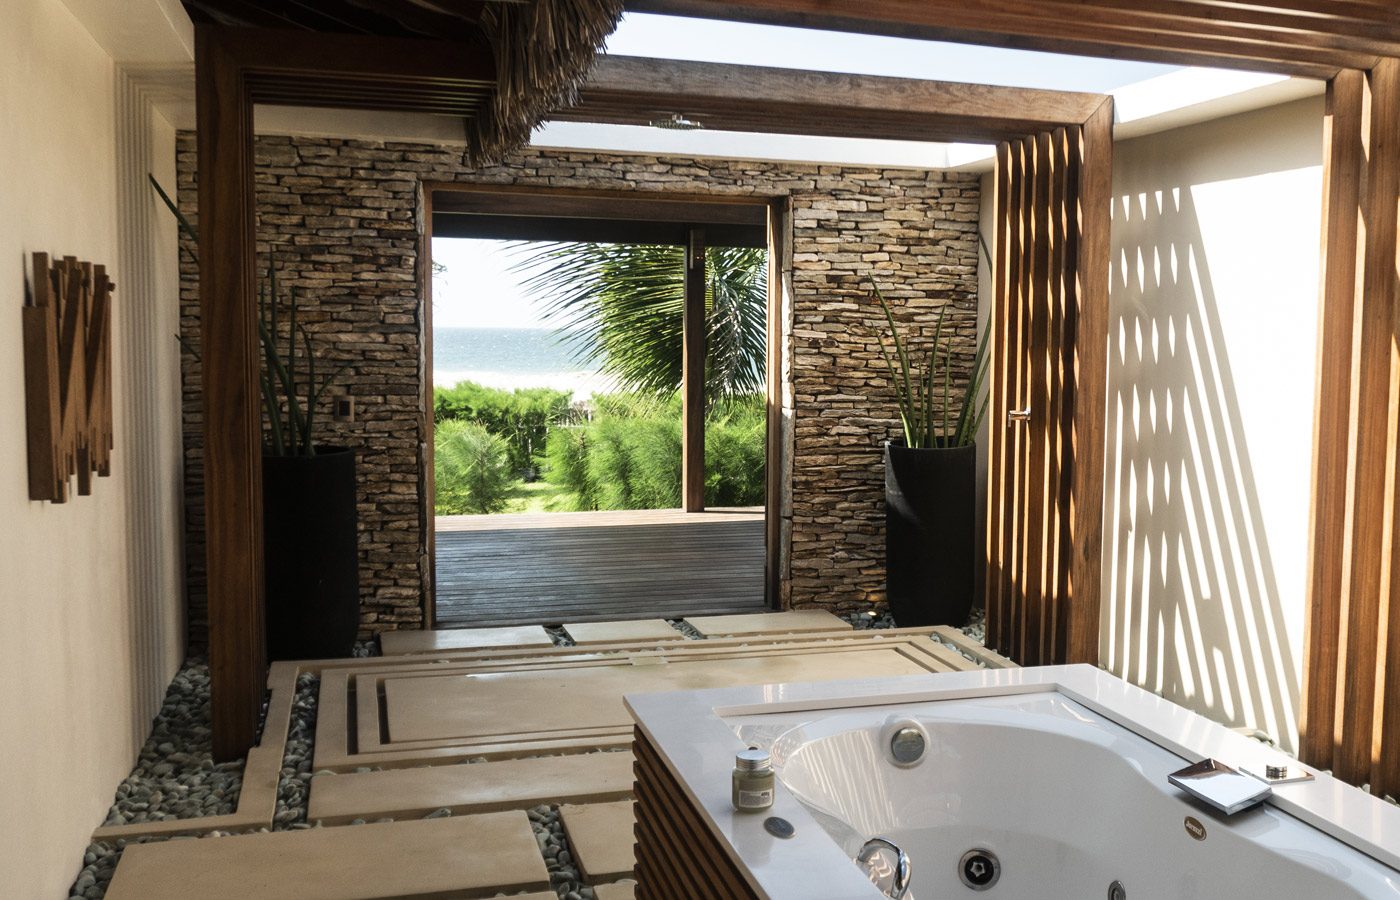 Jacuzzi at Hotel Casana with a view, luxury hotel in Prea Brazil